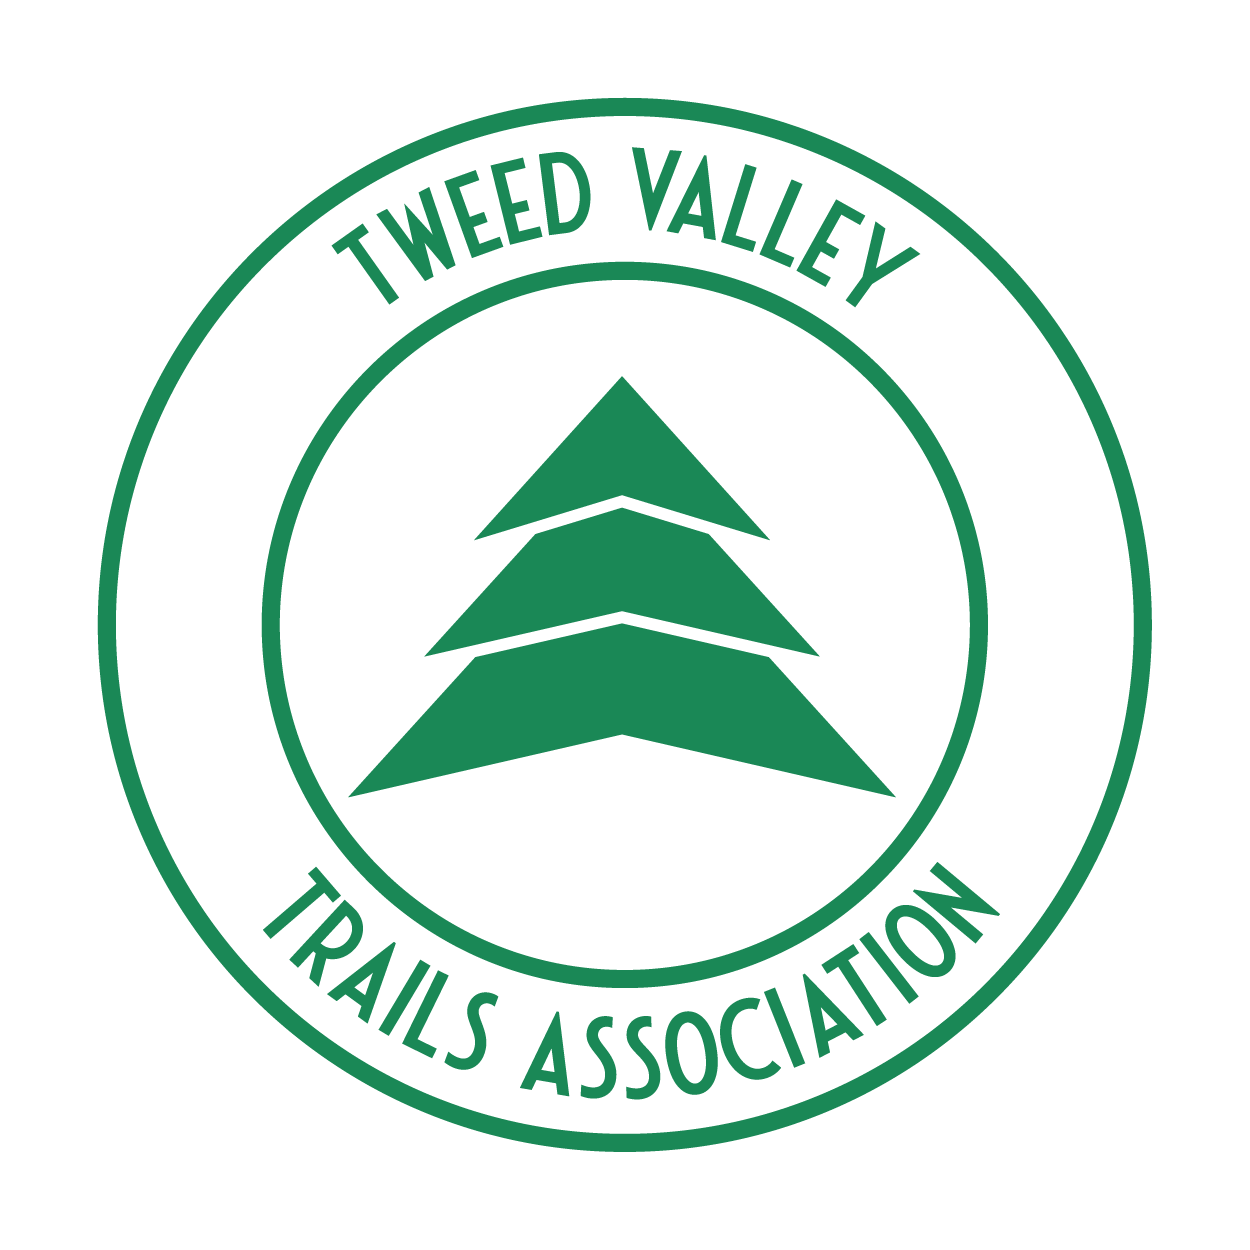 Tweed Valley Trail Association, Golfie Trail, cotic trail fund, powered by cotic